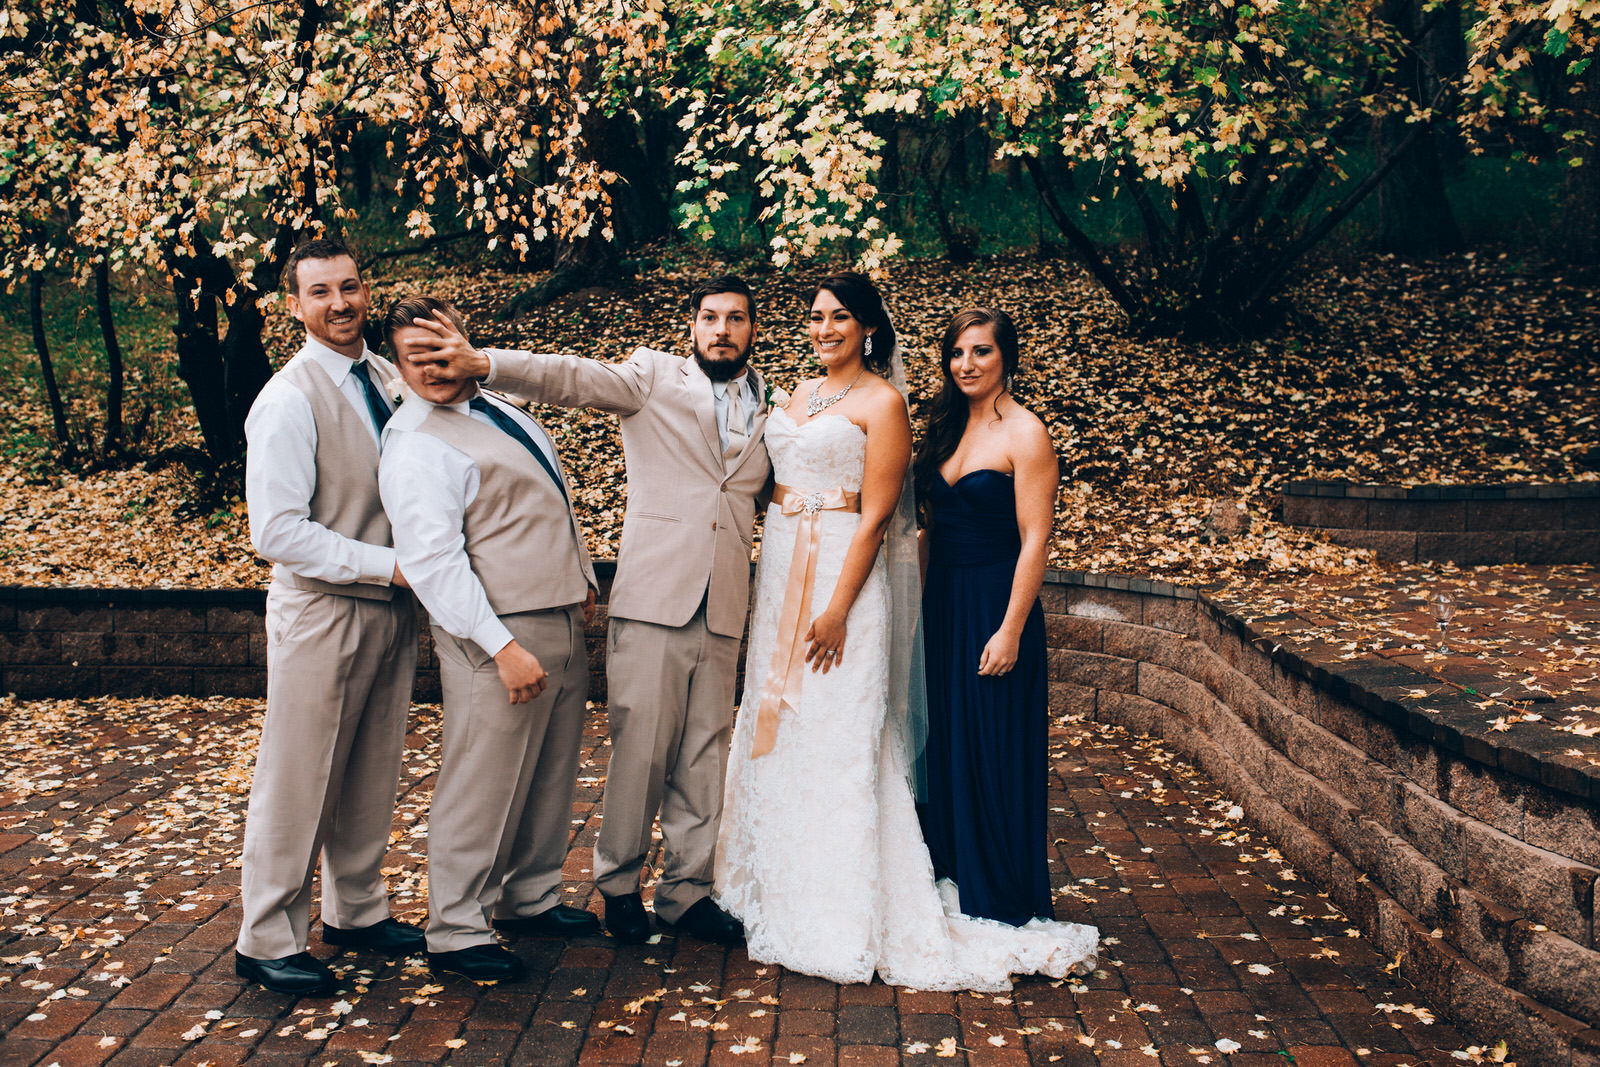 The Pines at Genesee - Denver Wedding Photographer (37 of 52)-1.jpg